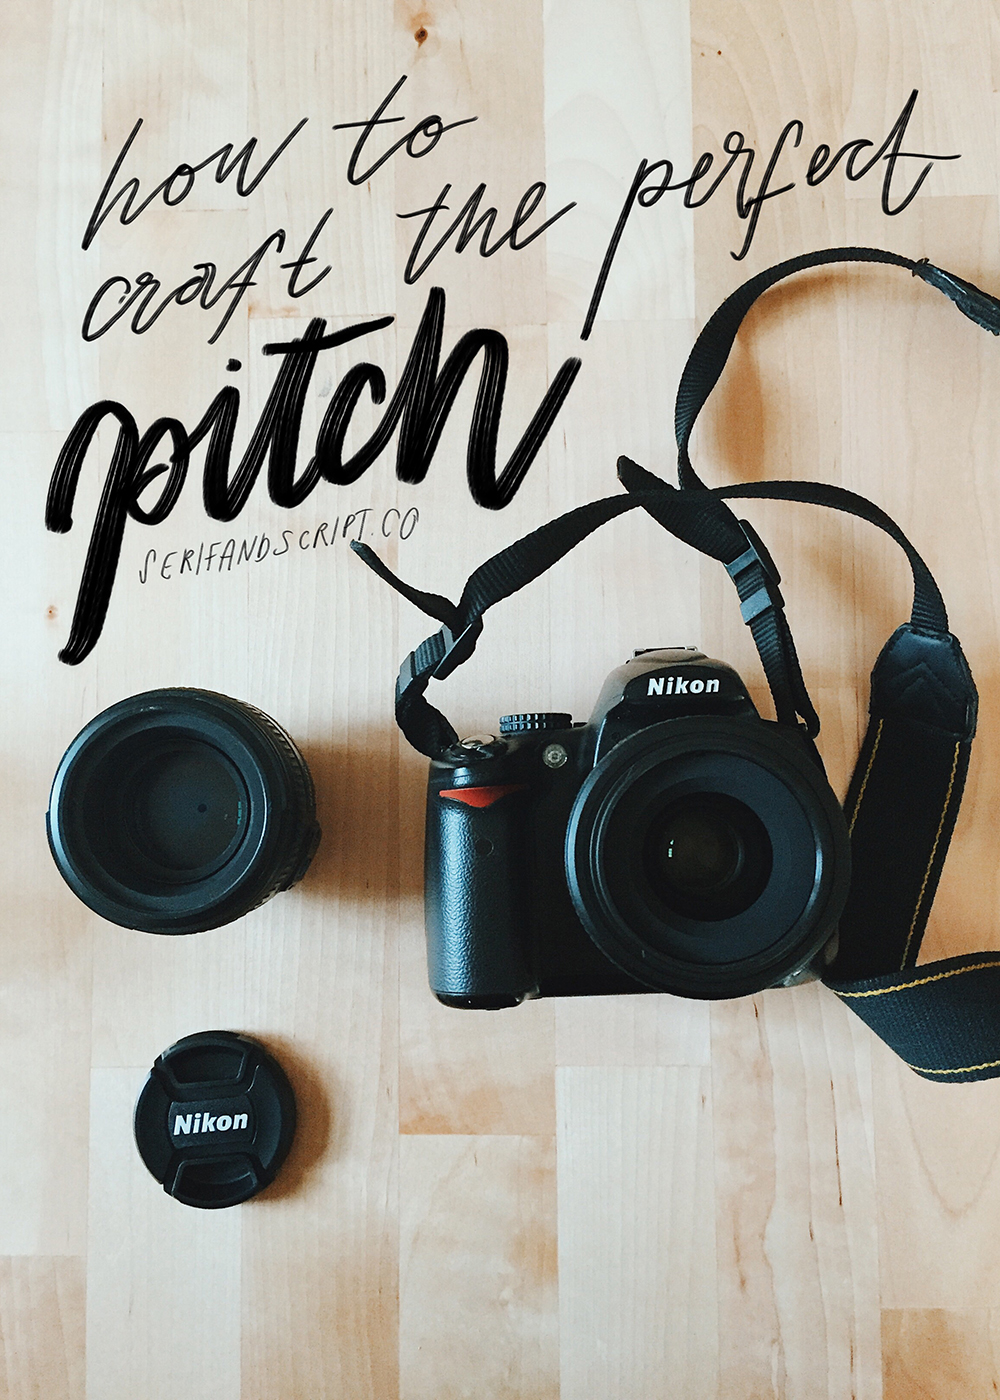 how to craft the perfect pitch (from an editor's perspective)